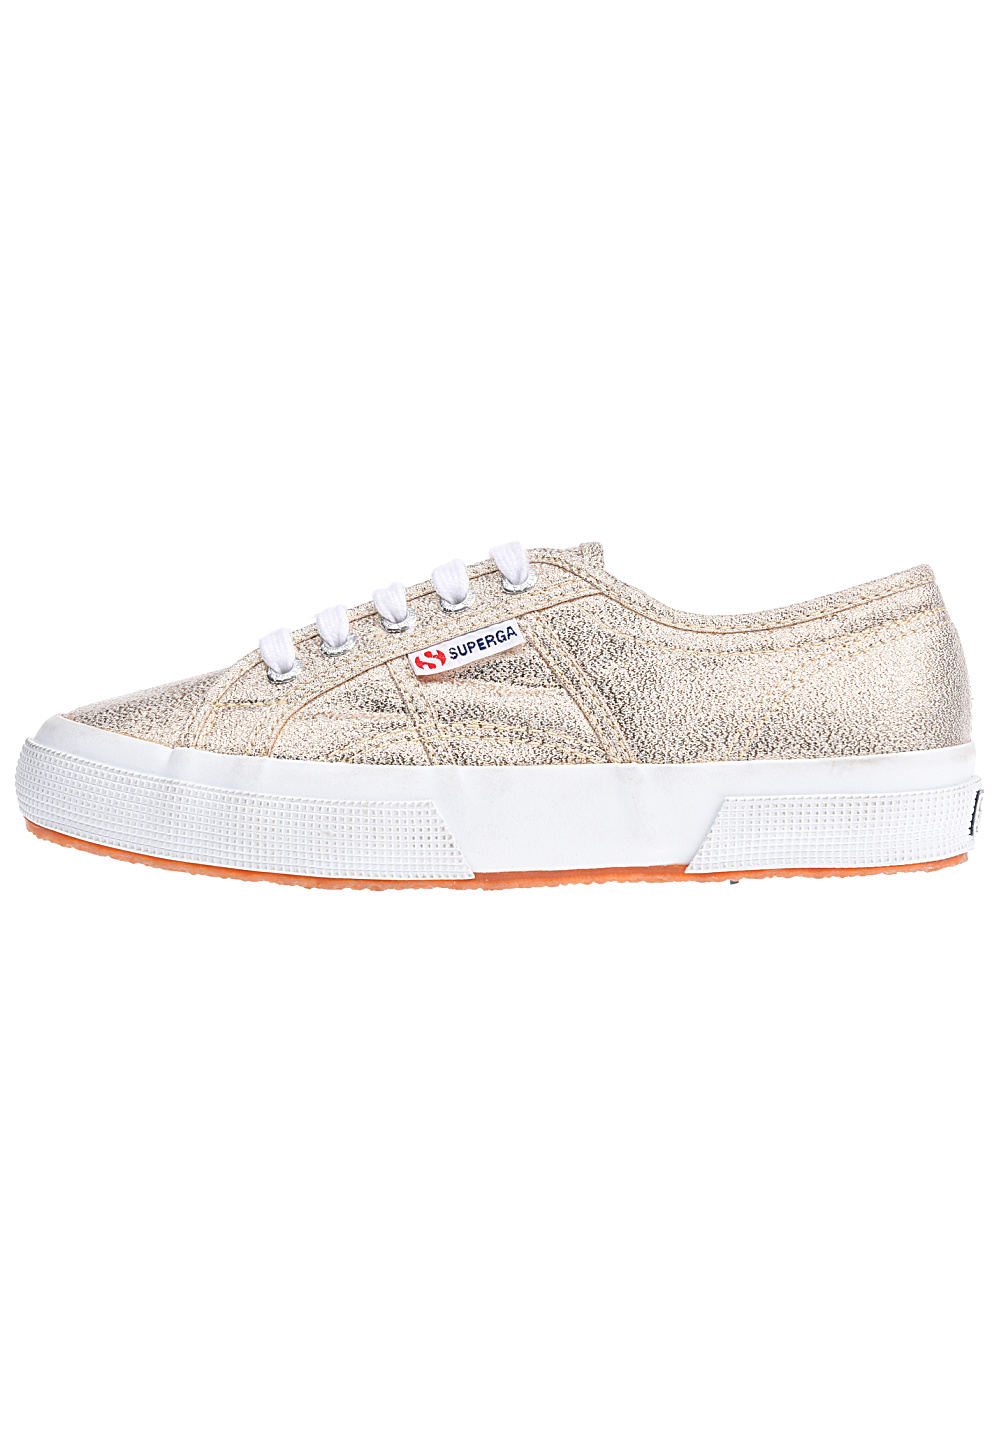 Lamew Baskets Superga Femme 2750 Or Pour 2YDW9bEIeH